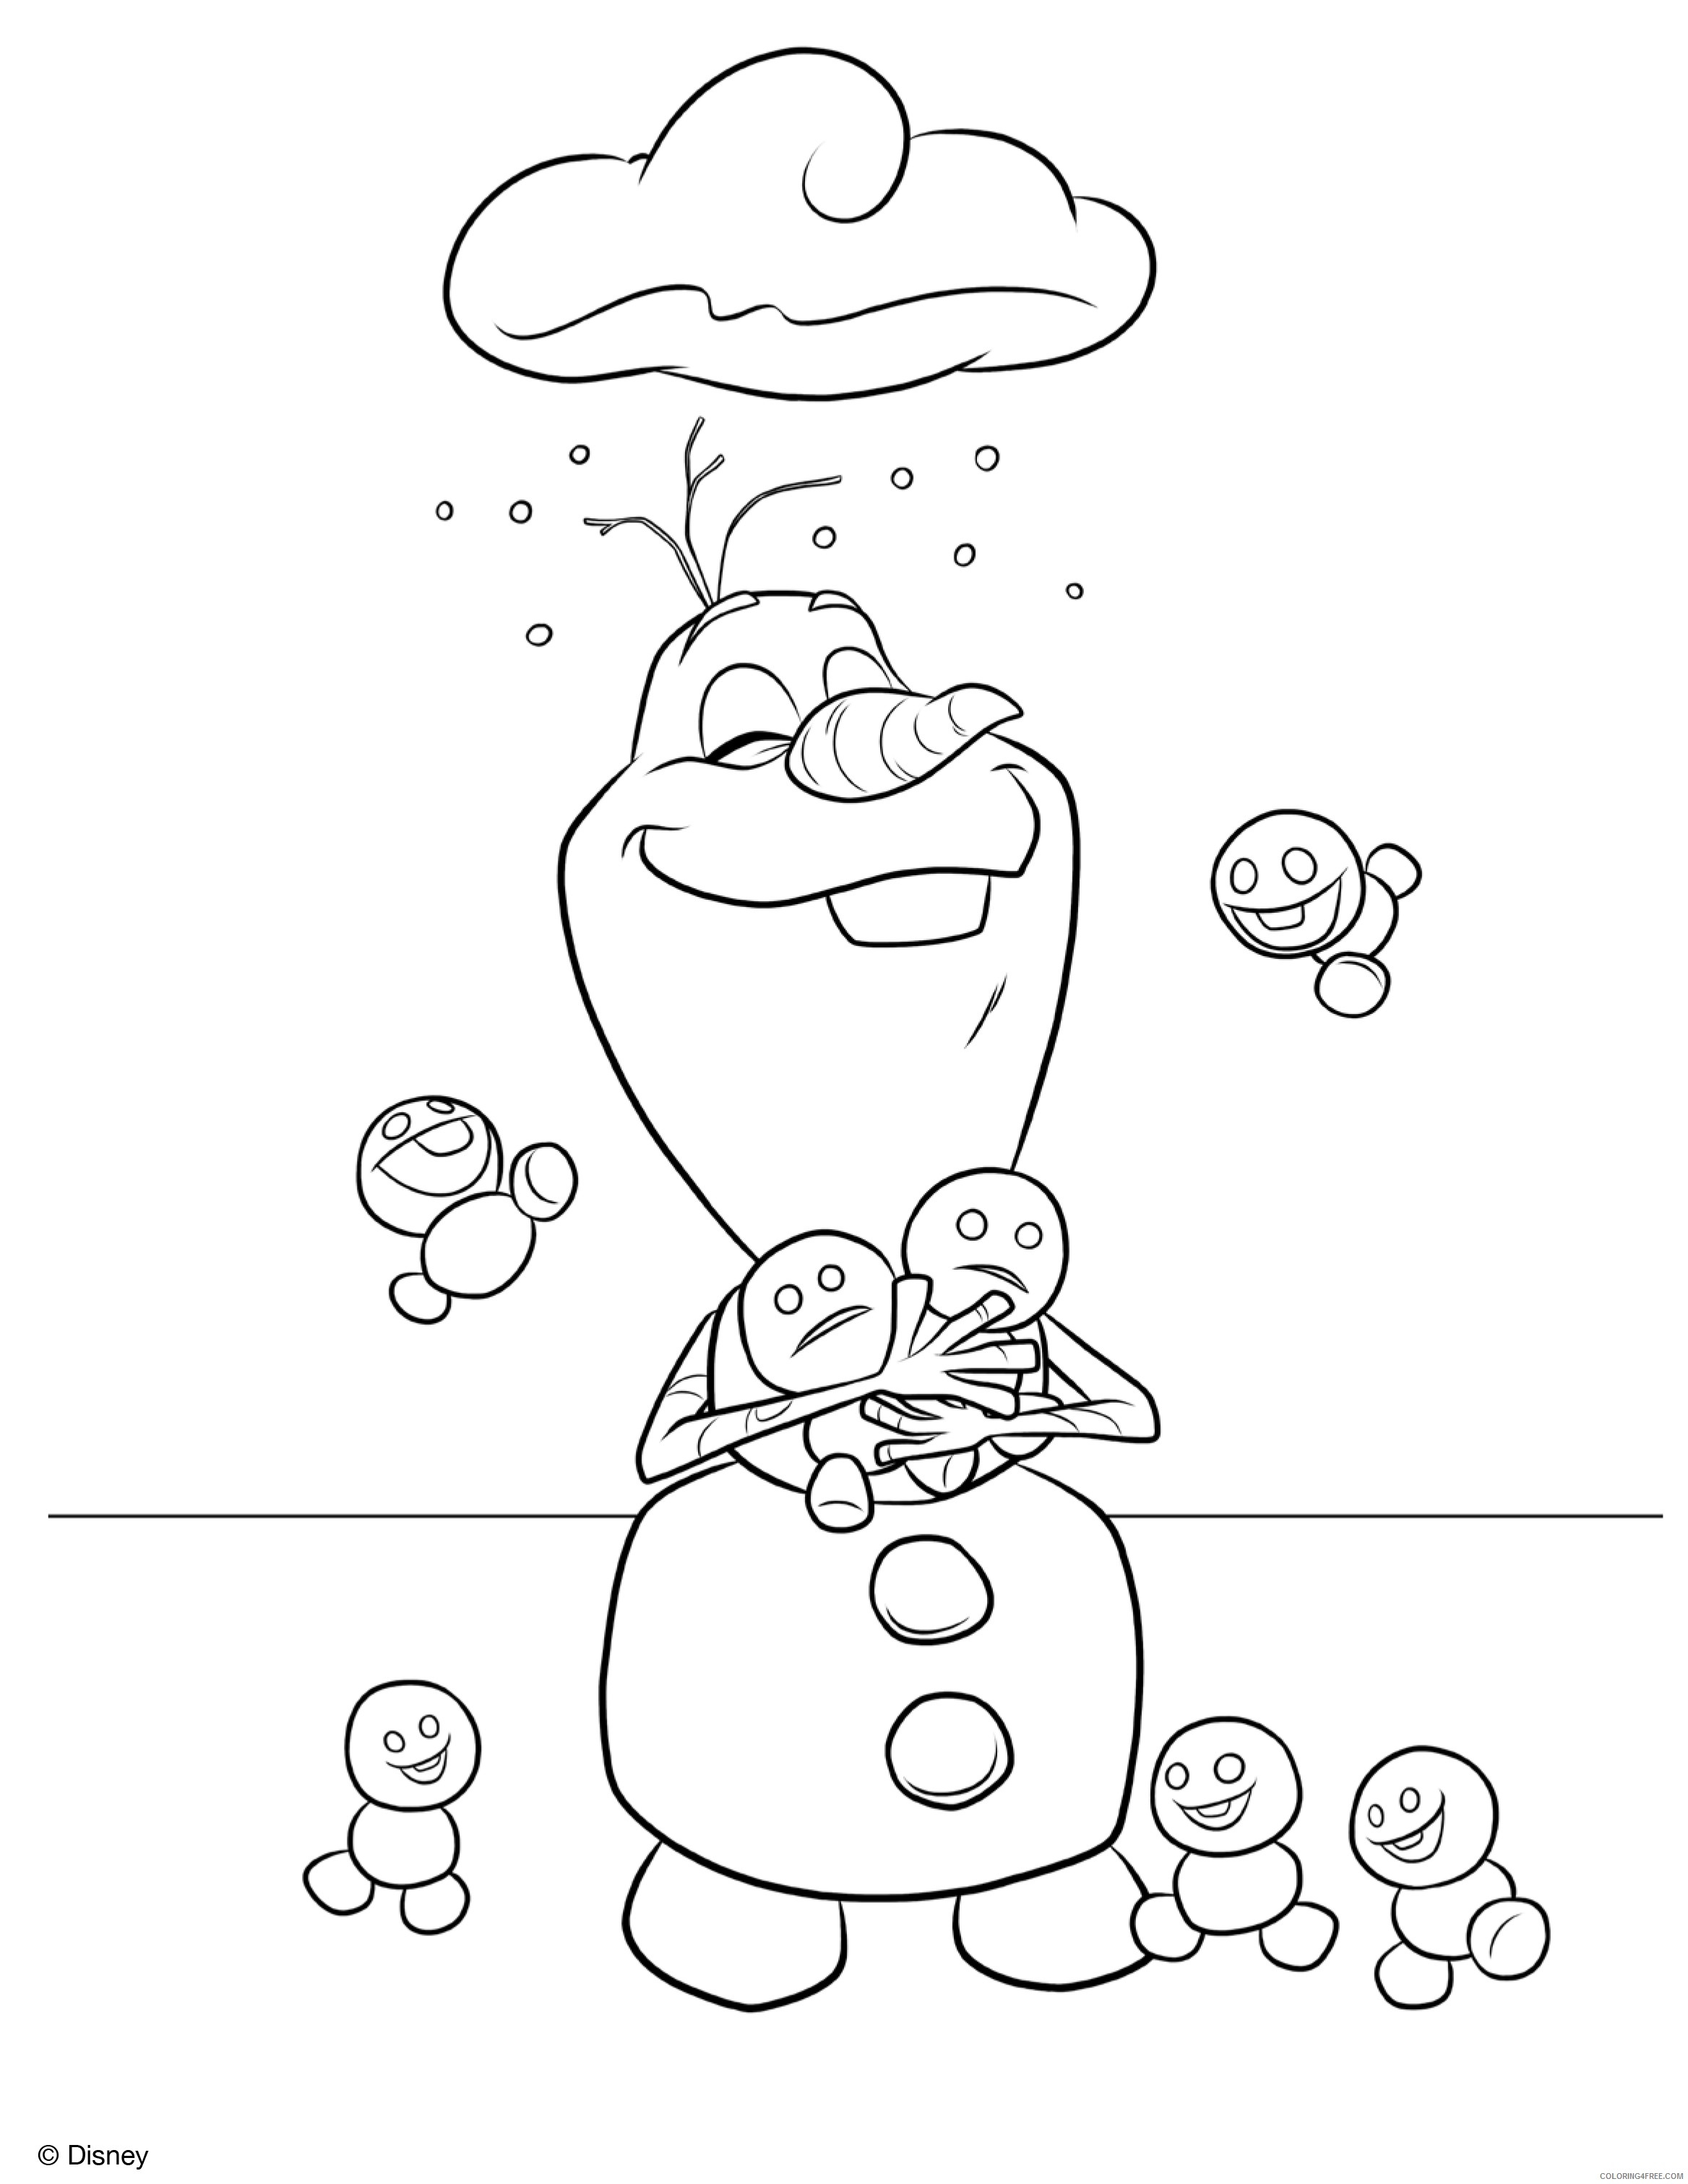 Frozen Olaf Coloring Pages At Getdrawings